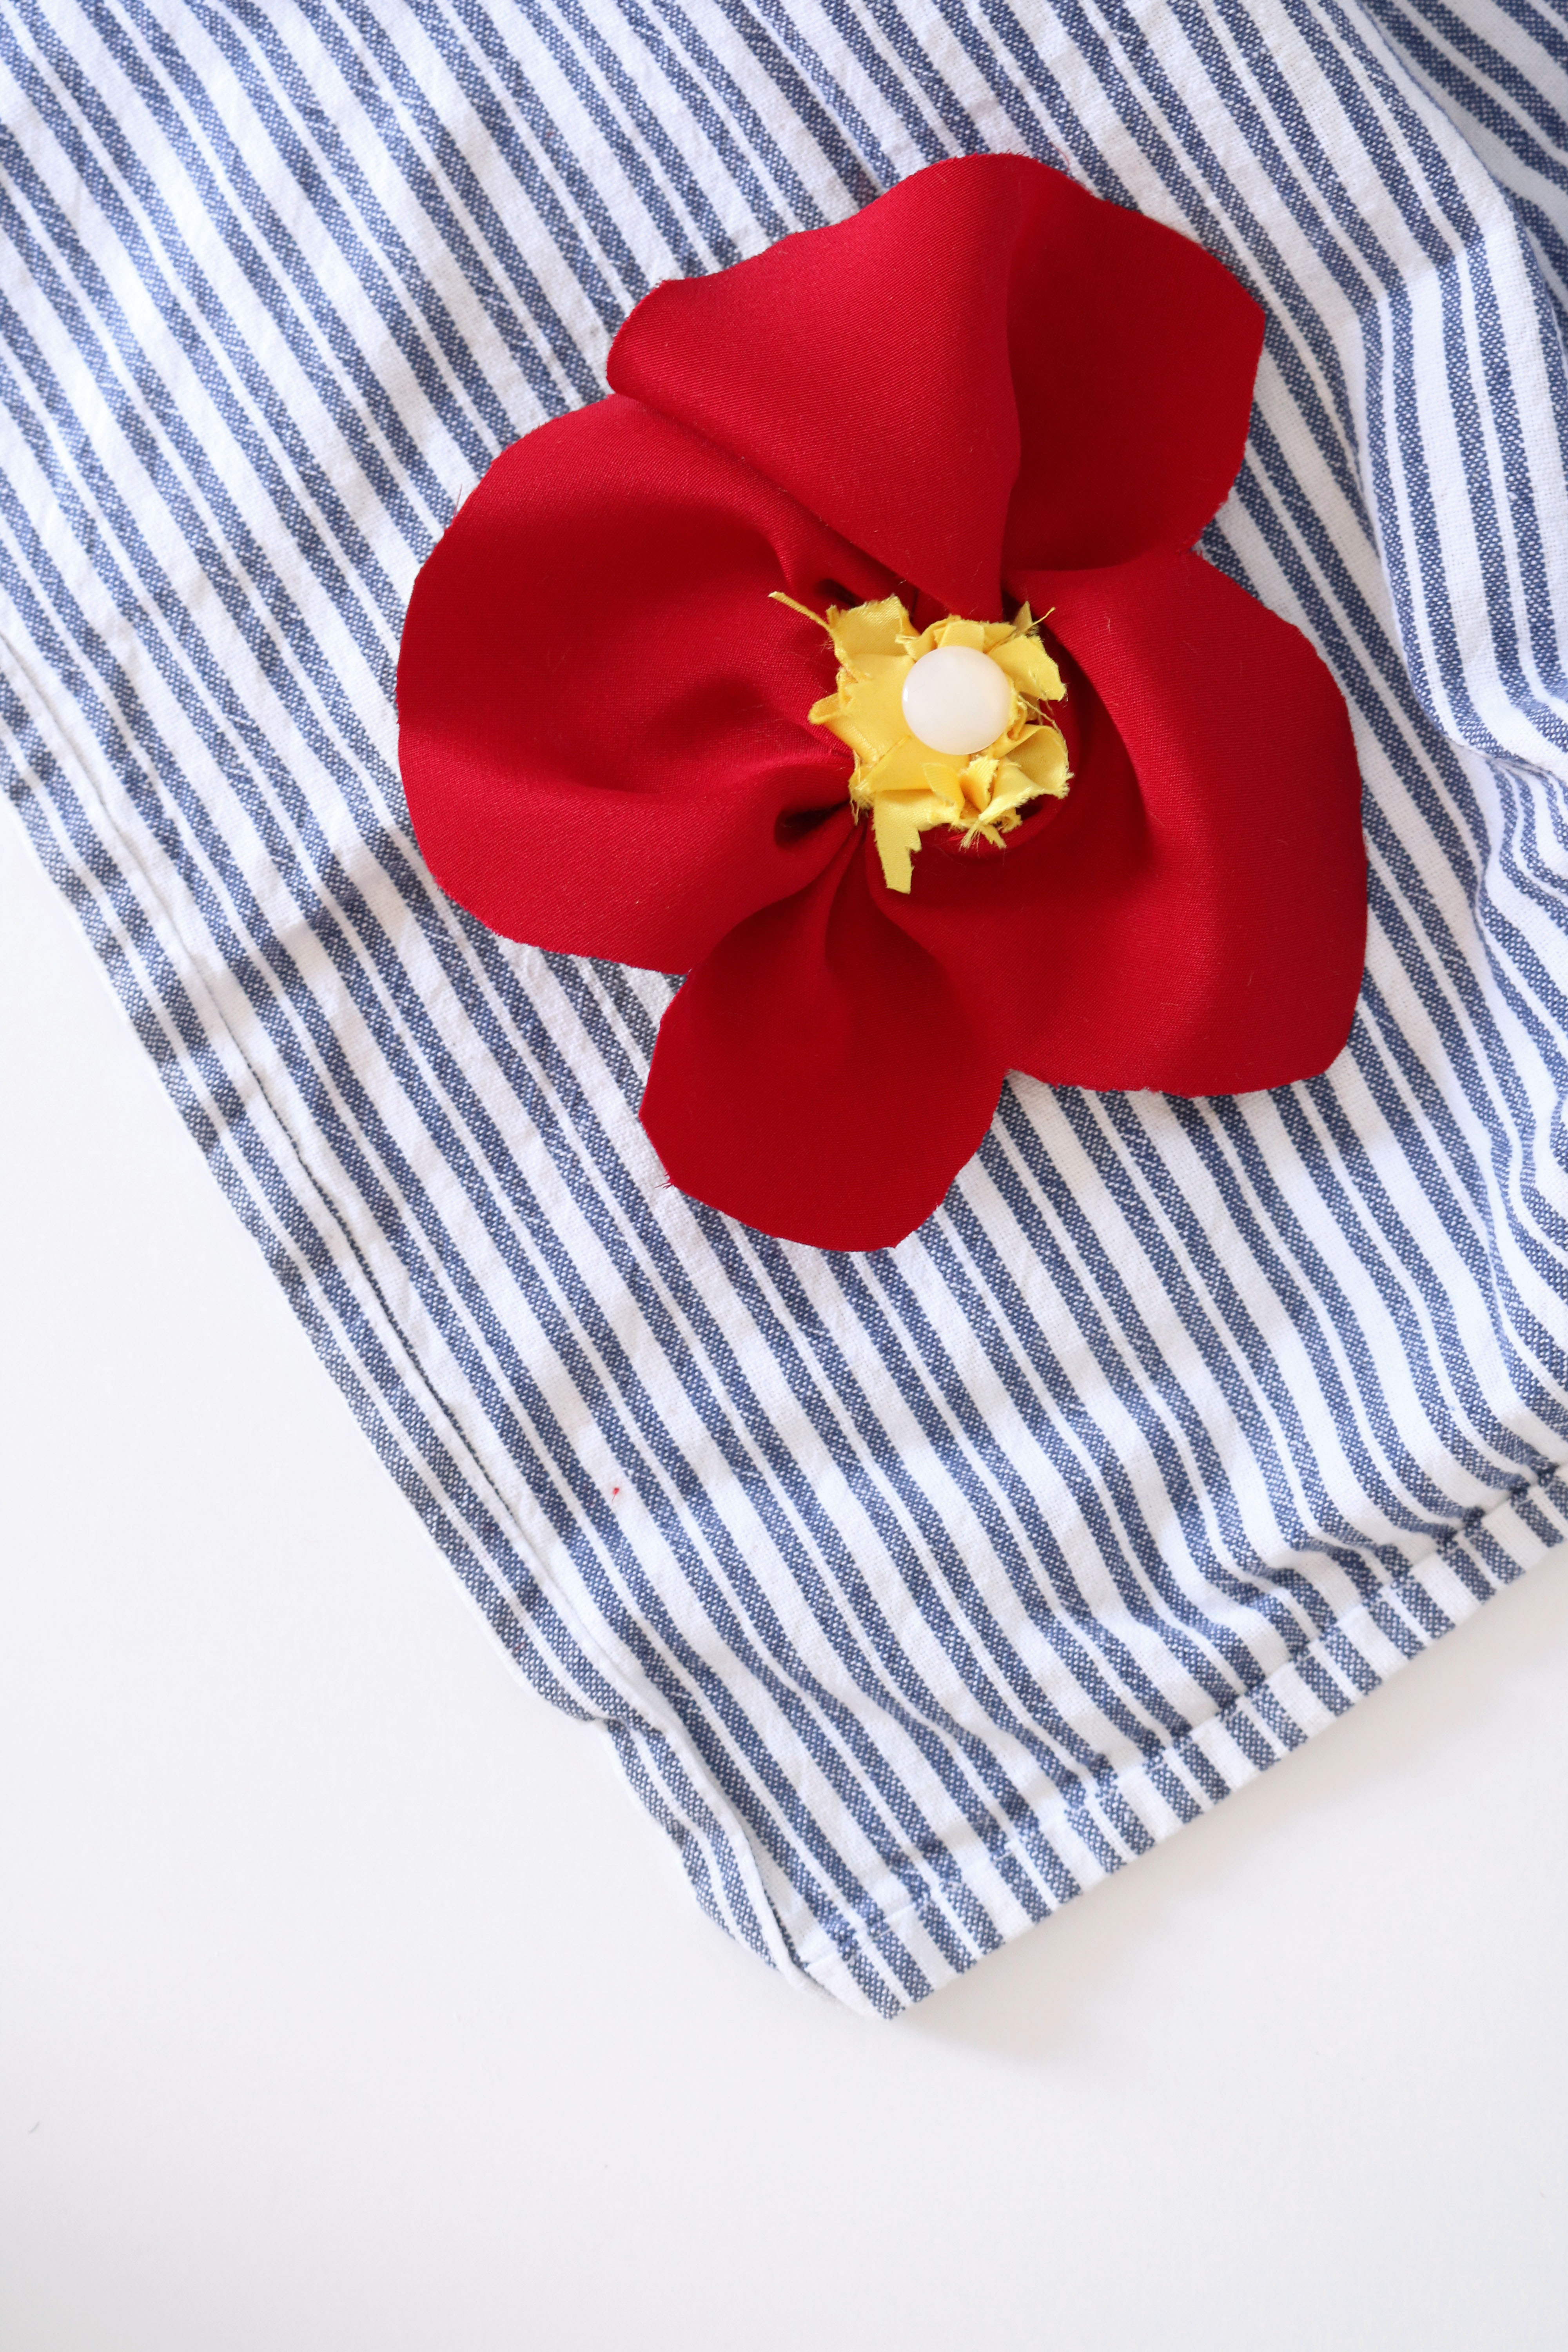 red silk remembrance poppy on blue striped towel